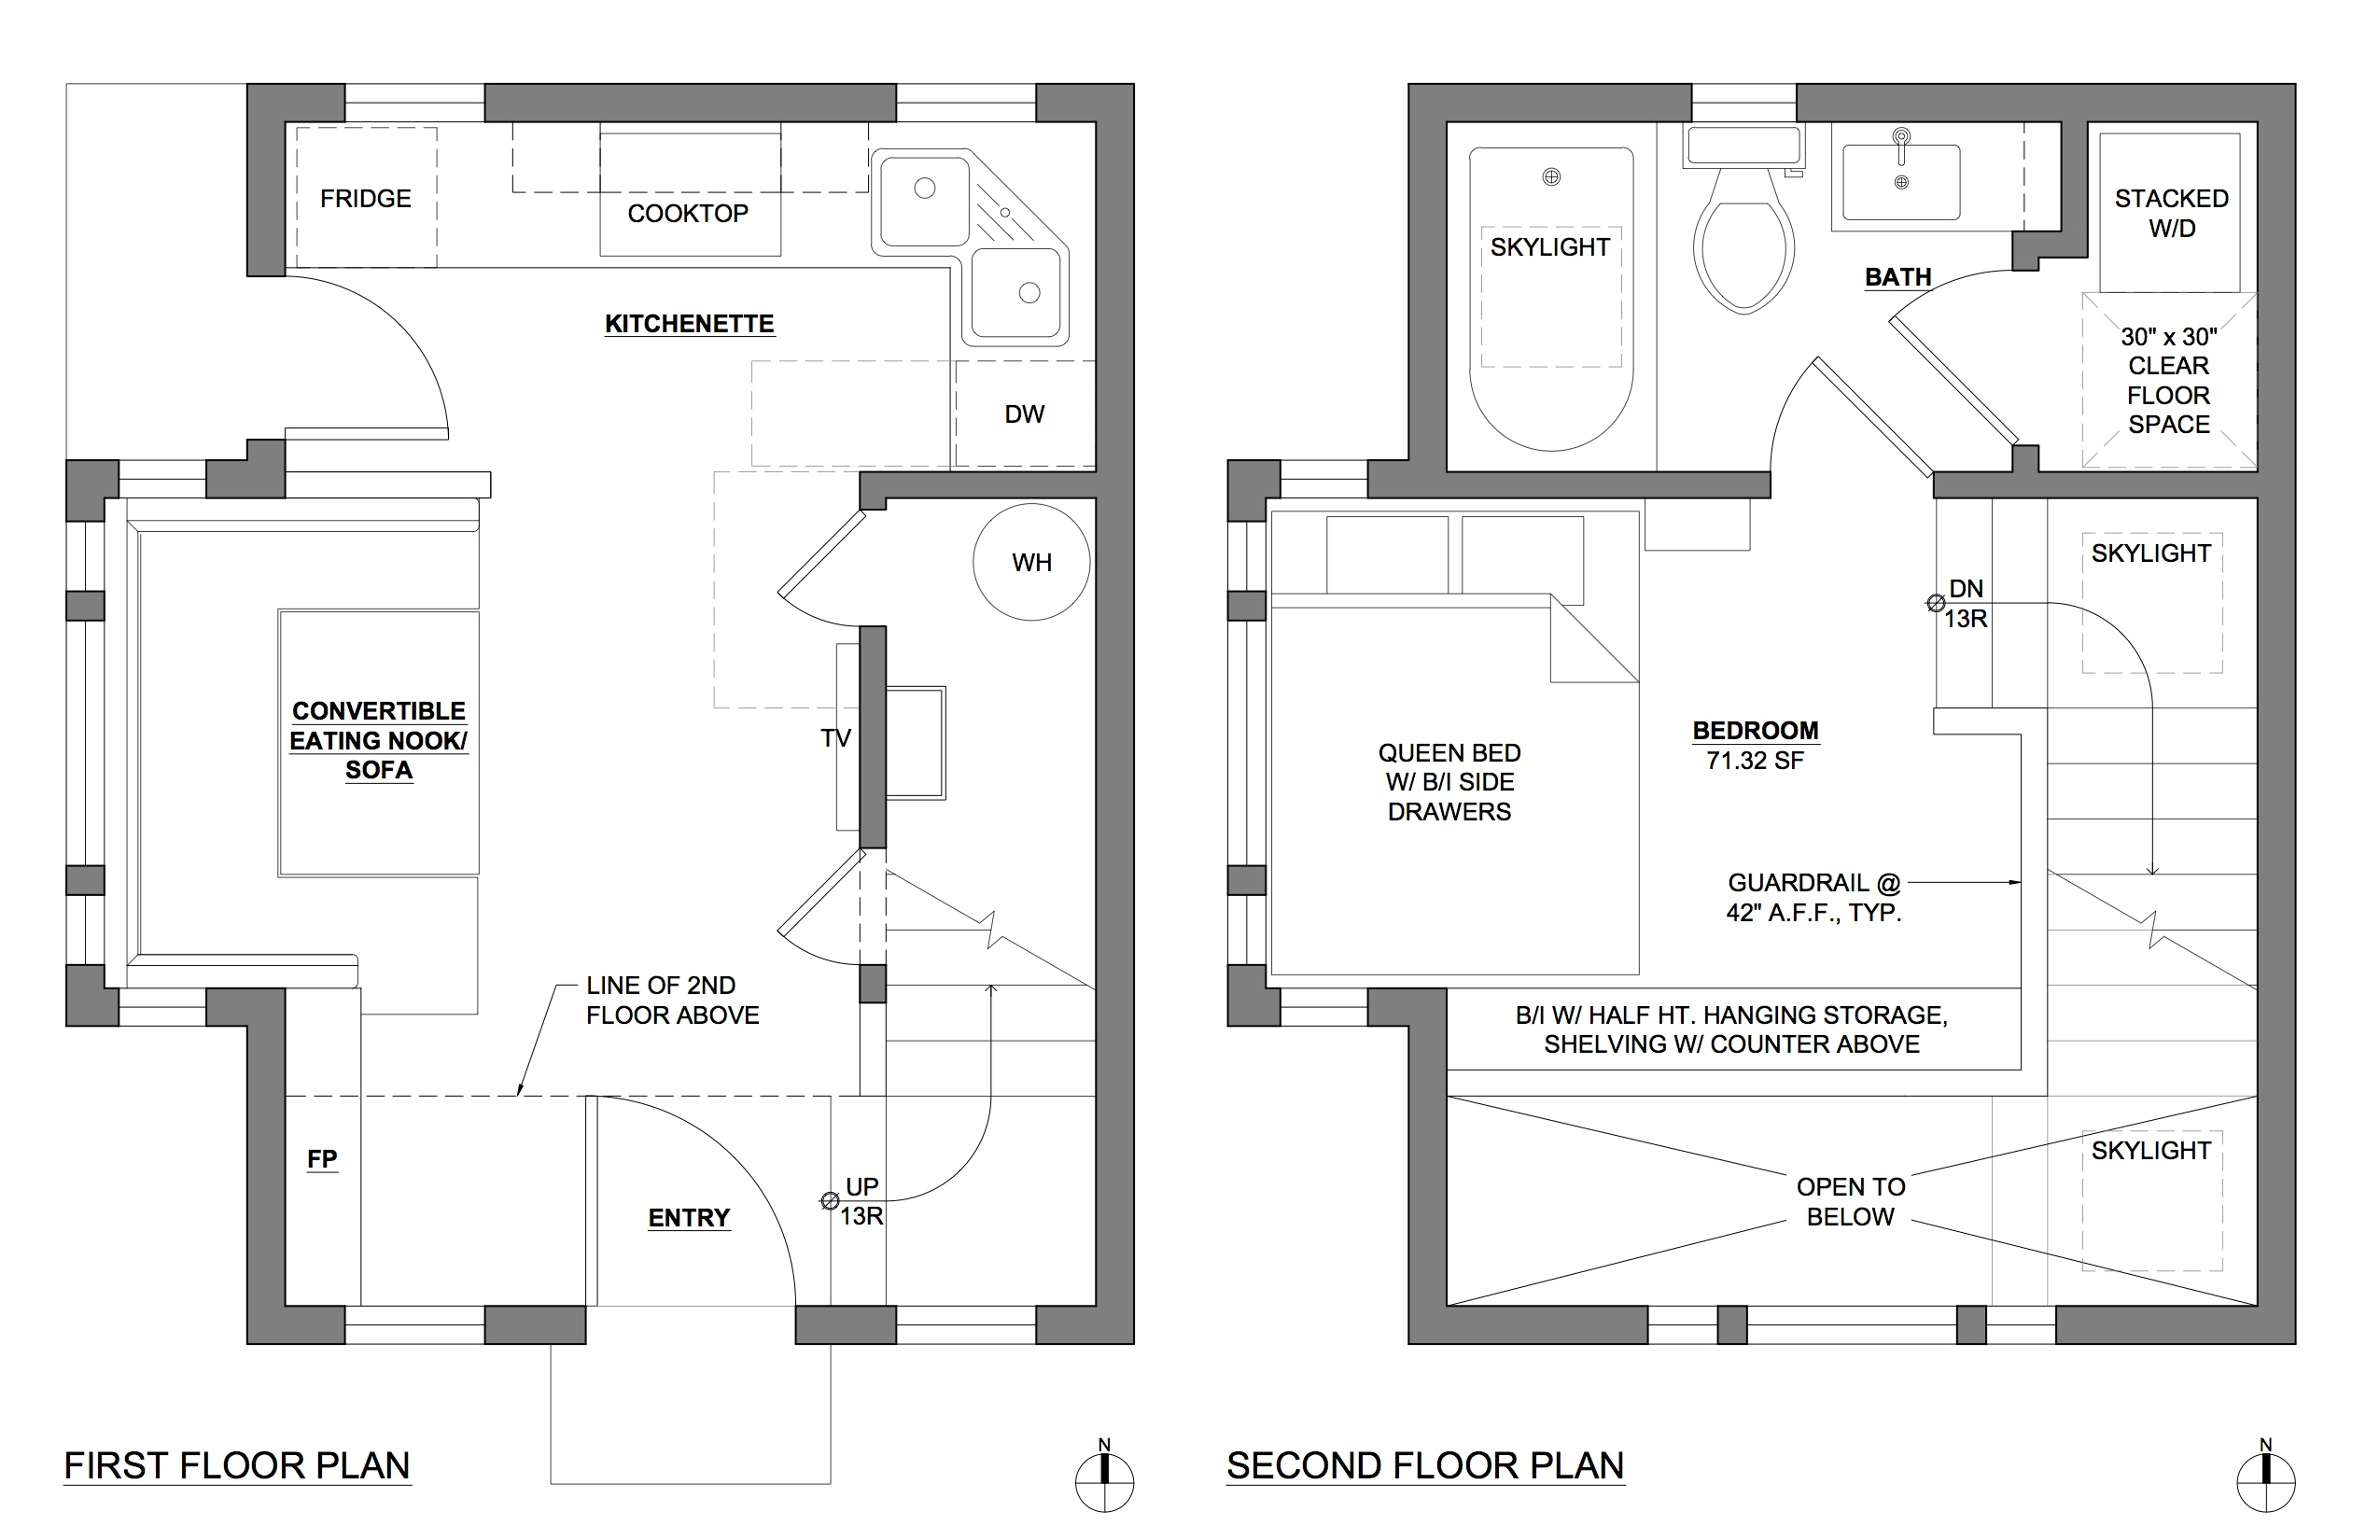 dyer adu floor plan accessory dwellings